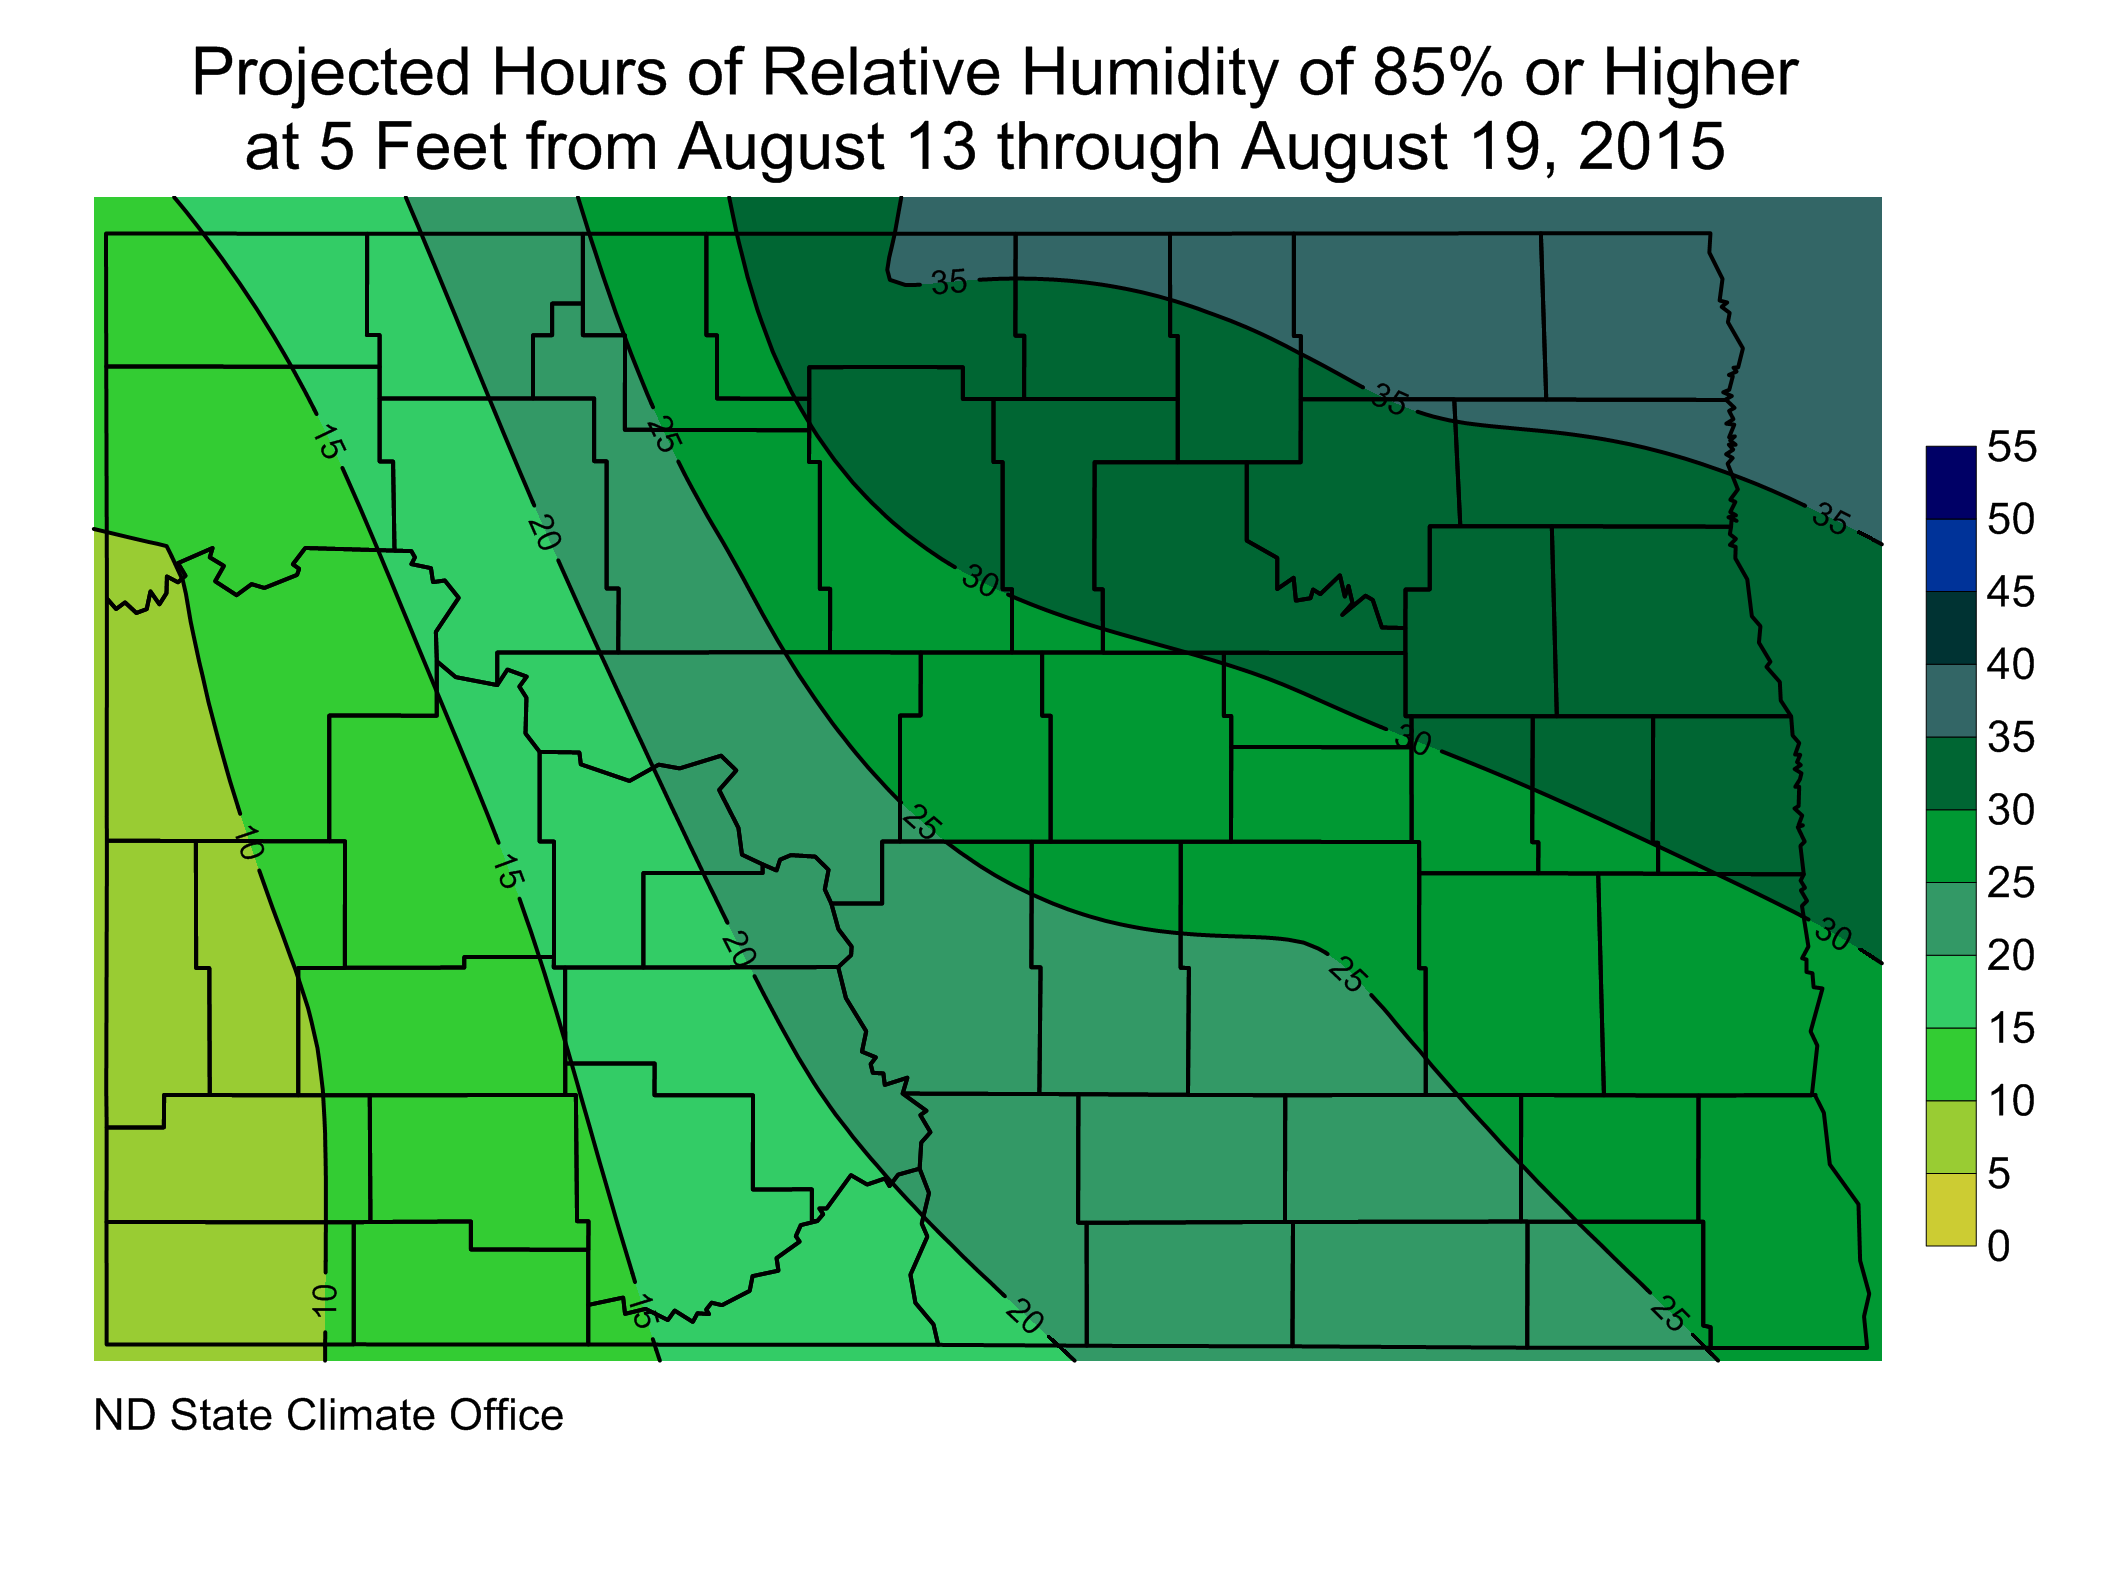 Figure 3. Projected Hours at/above 85% Relative Humidity from August 13 through August 19, 2015